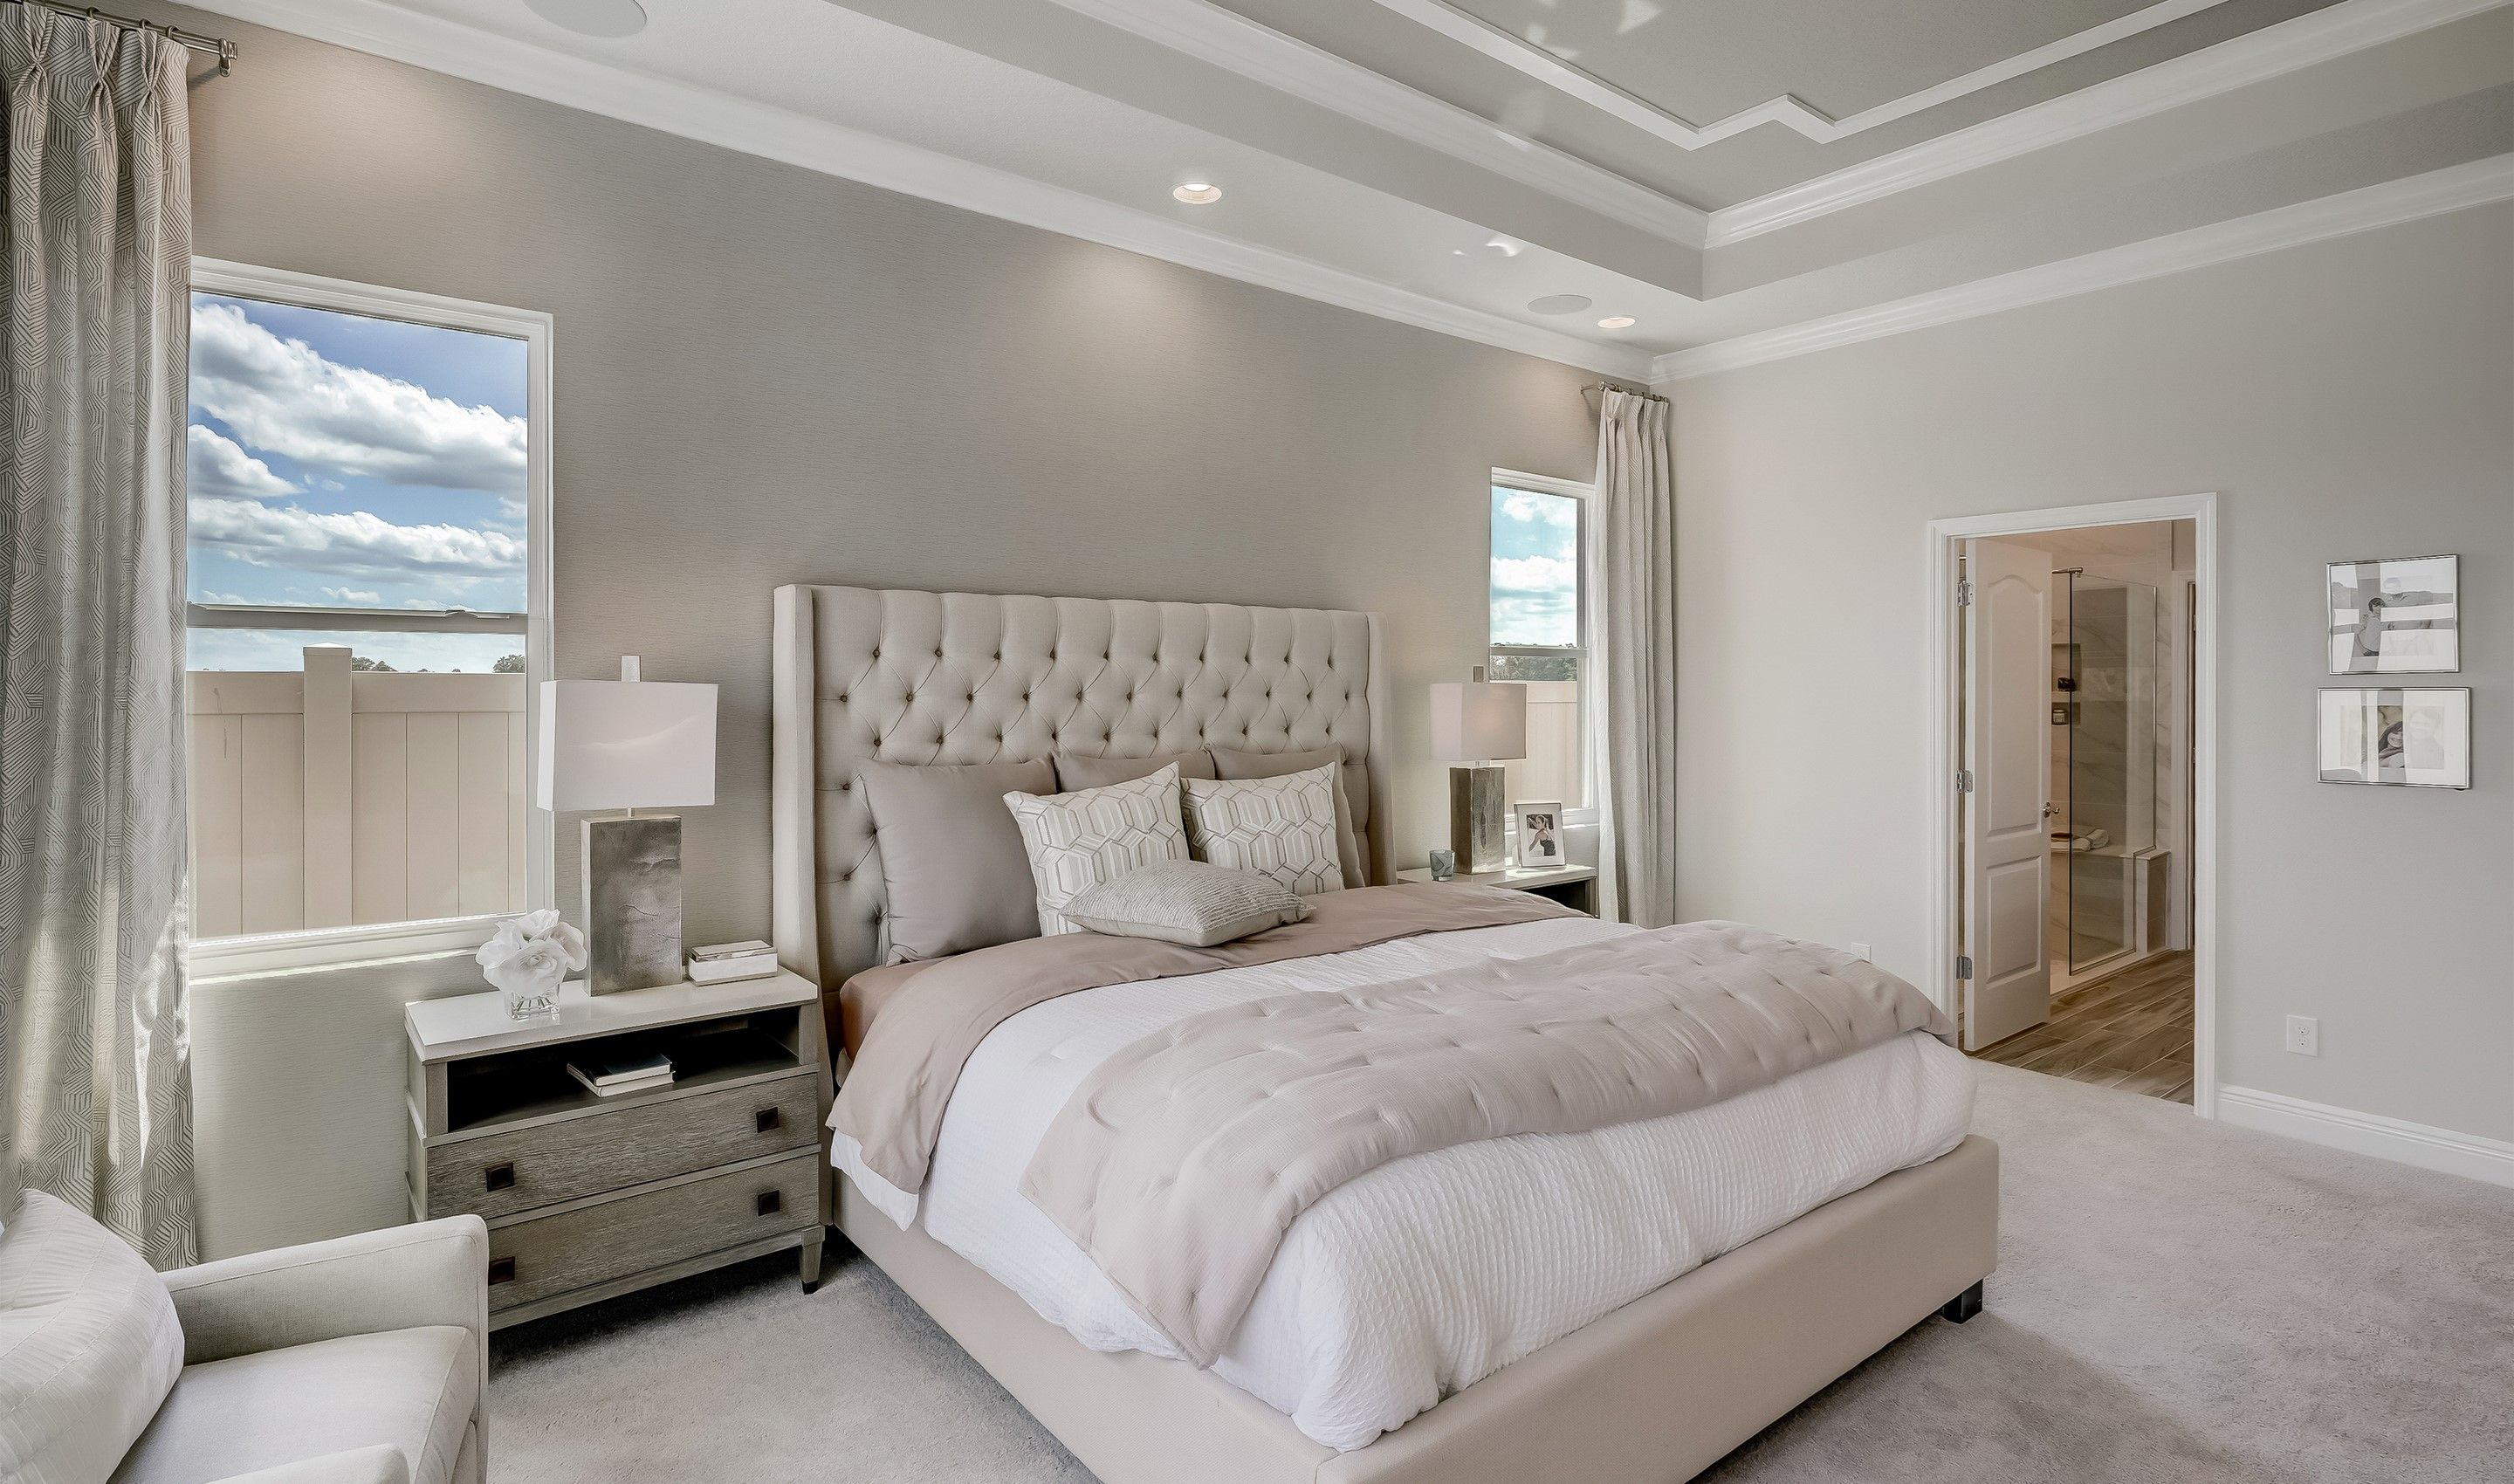 Bedroom featured in the Saint Lucia By K. Hovnanian® Homes in Orlando, FL